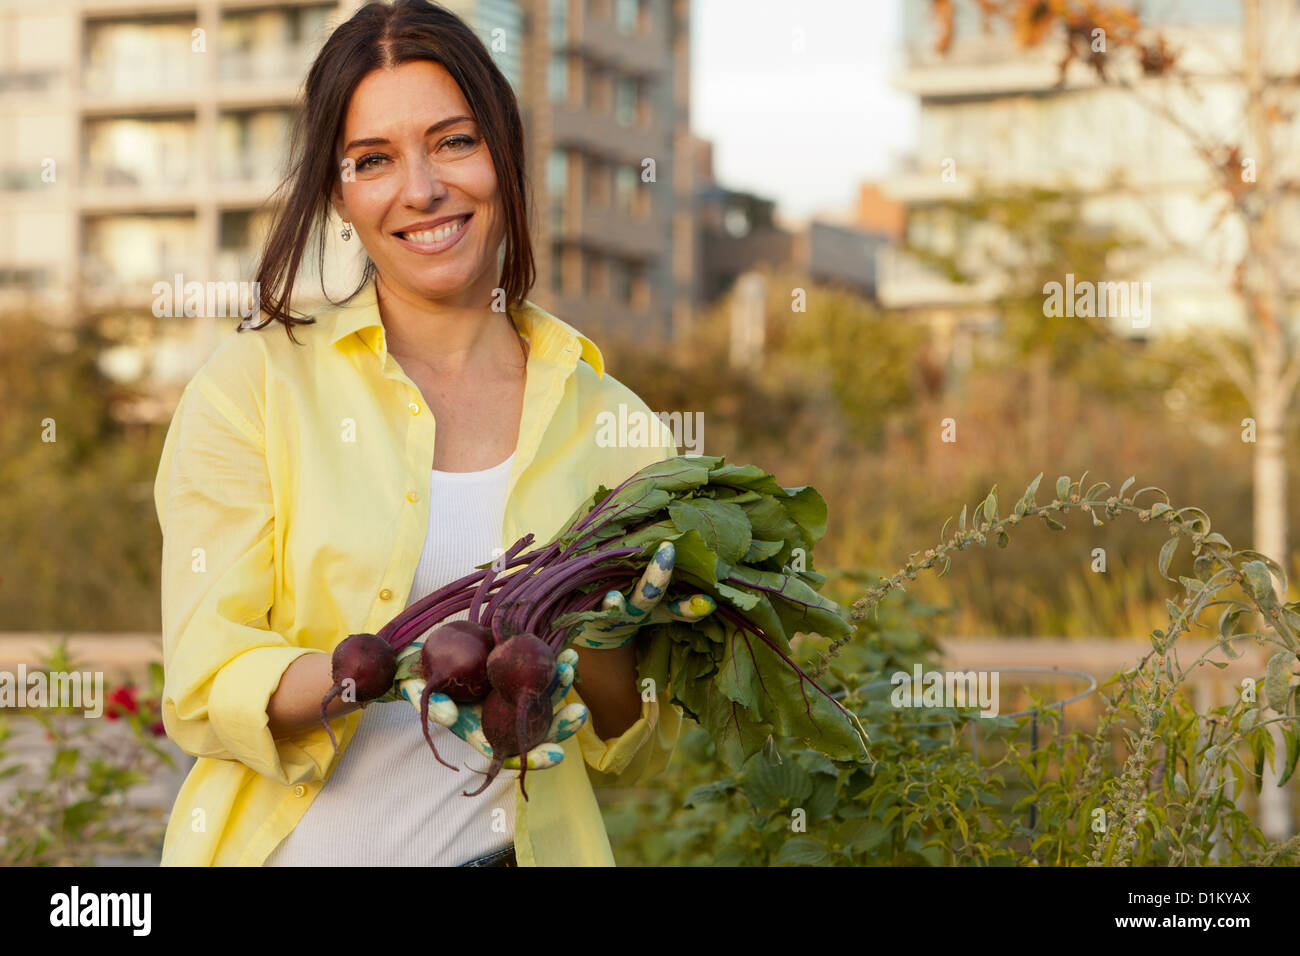 Caucasian woman holding bunch of beets Stock Photo